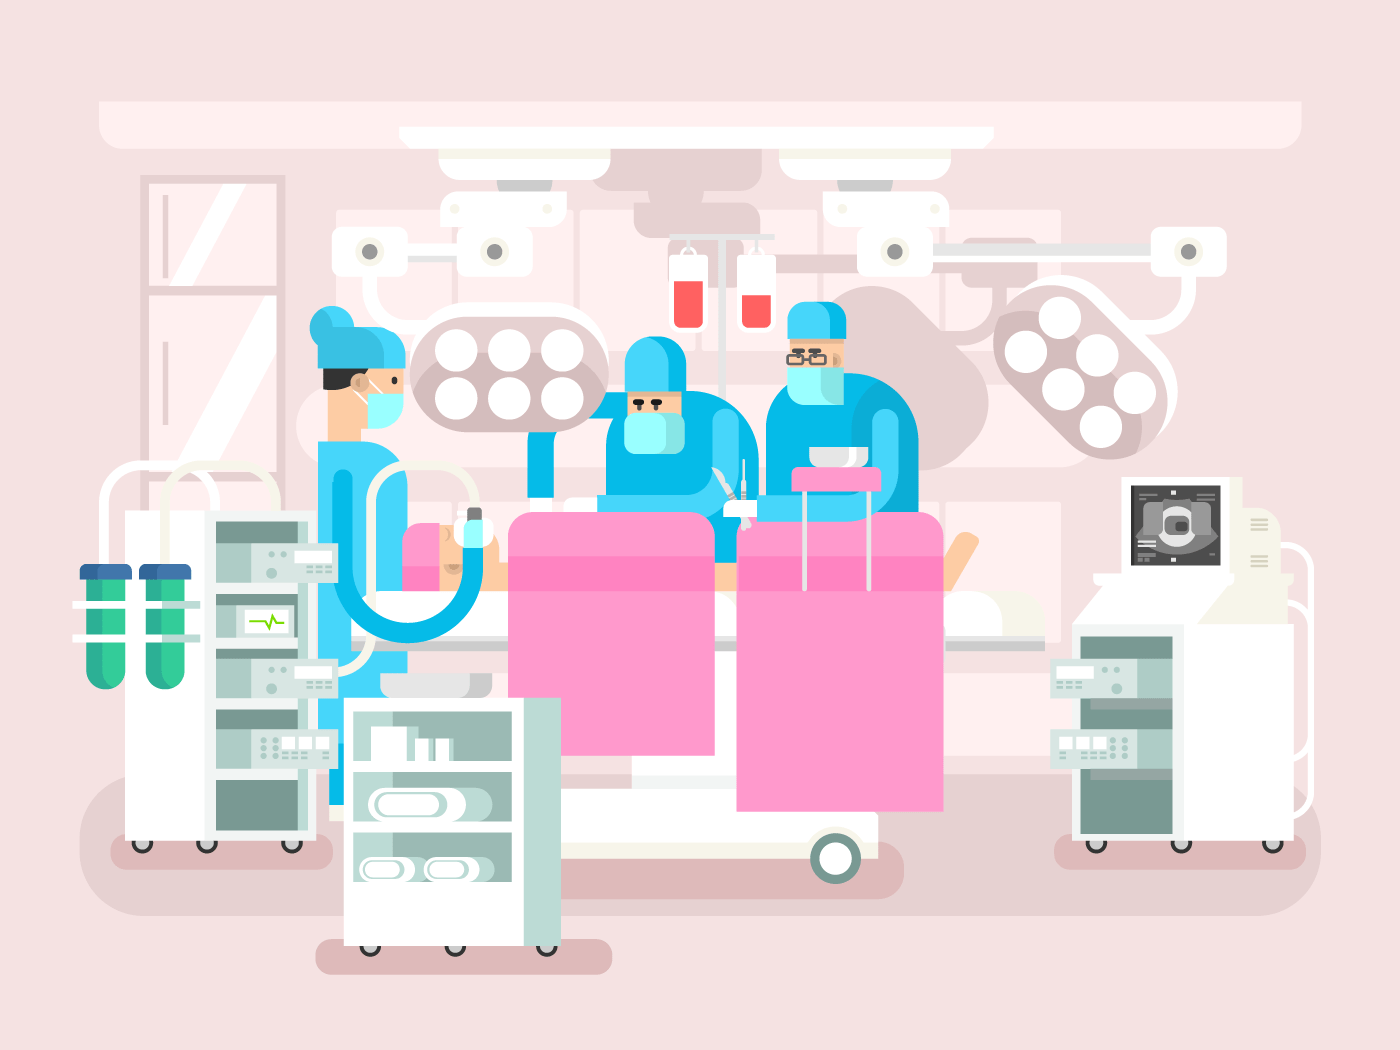 Operating room design flat vector illustration